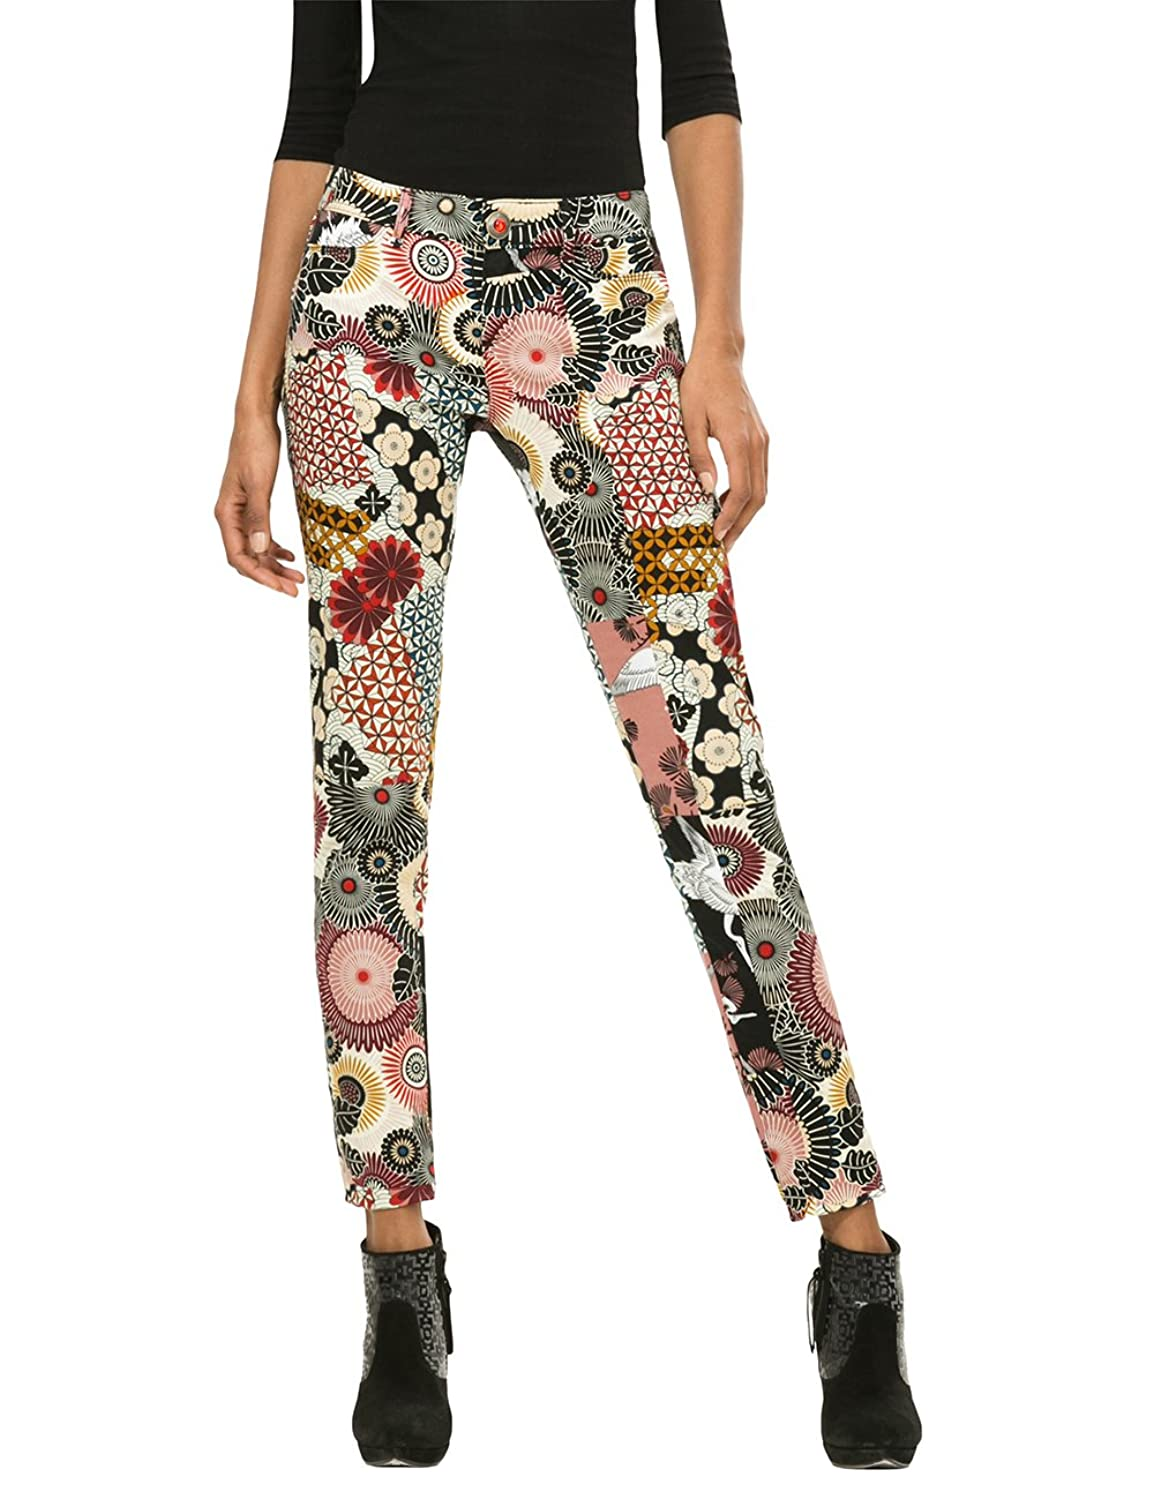 Desigual Womens' Pants Suave, Sizes XS-XL